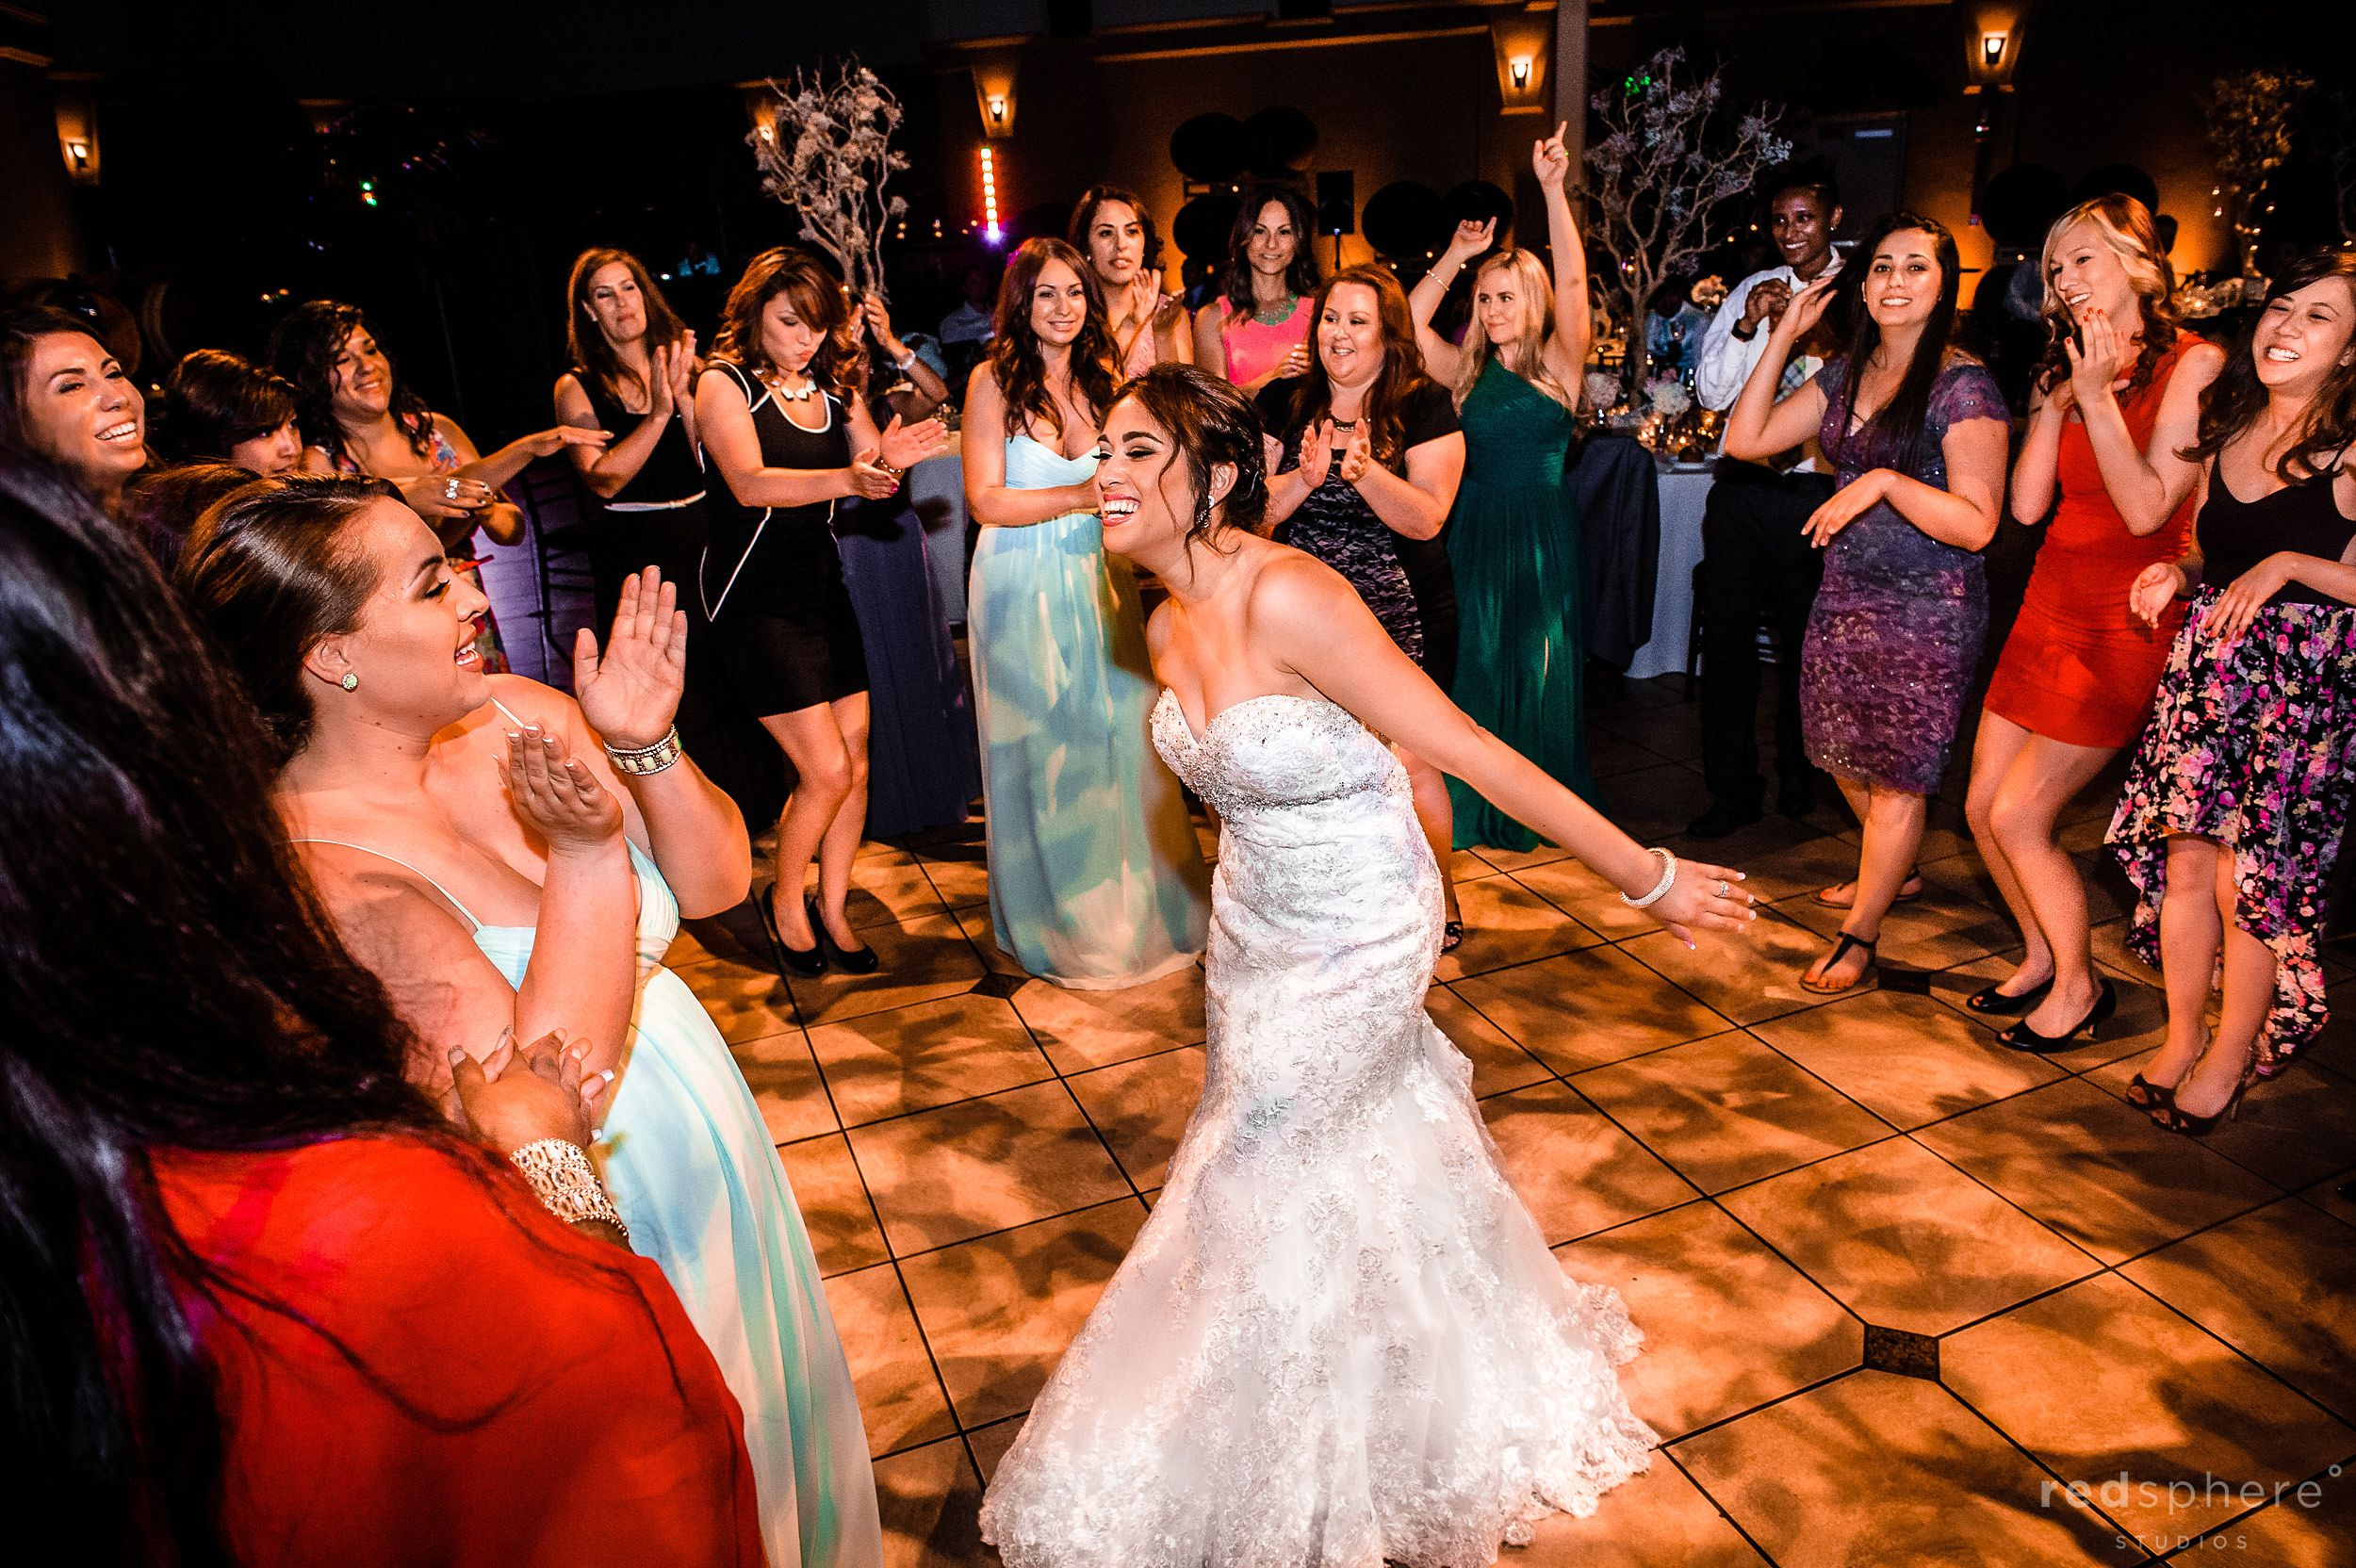 Bride Dancing While Guests Clap and Engage